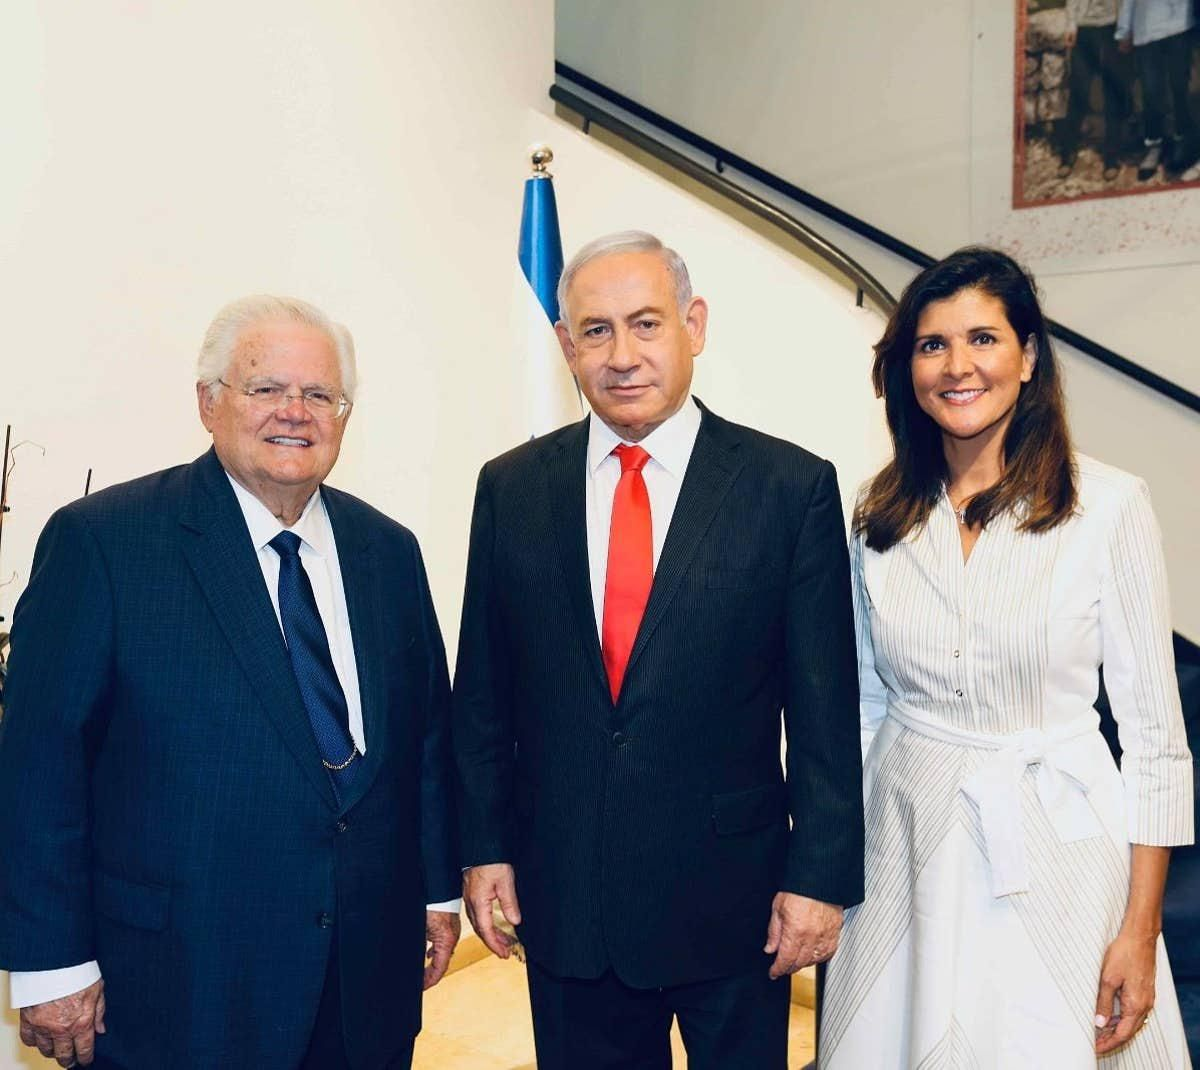 Nikki Haley disses new Israeli government with photo op praising disgraced Netanyahu